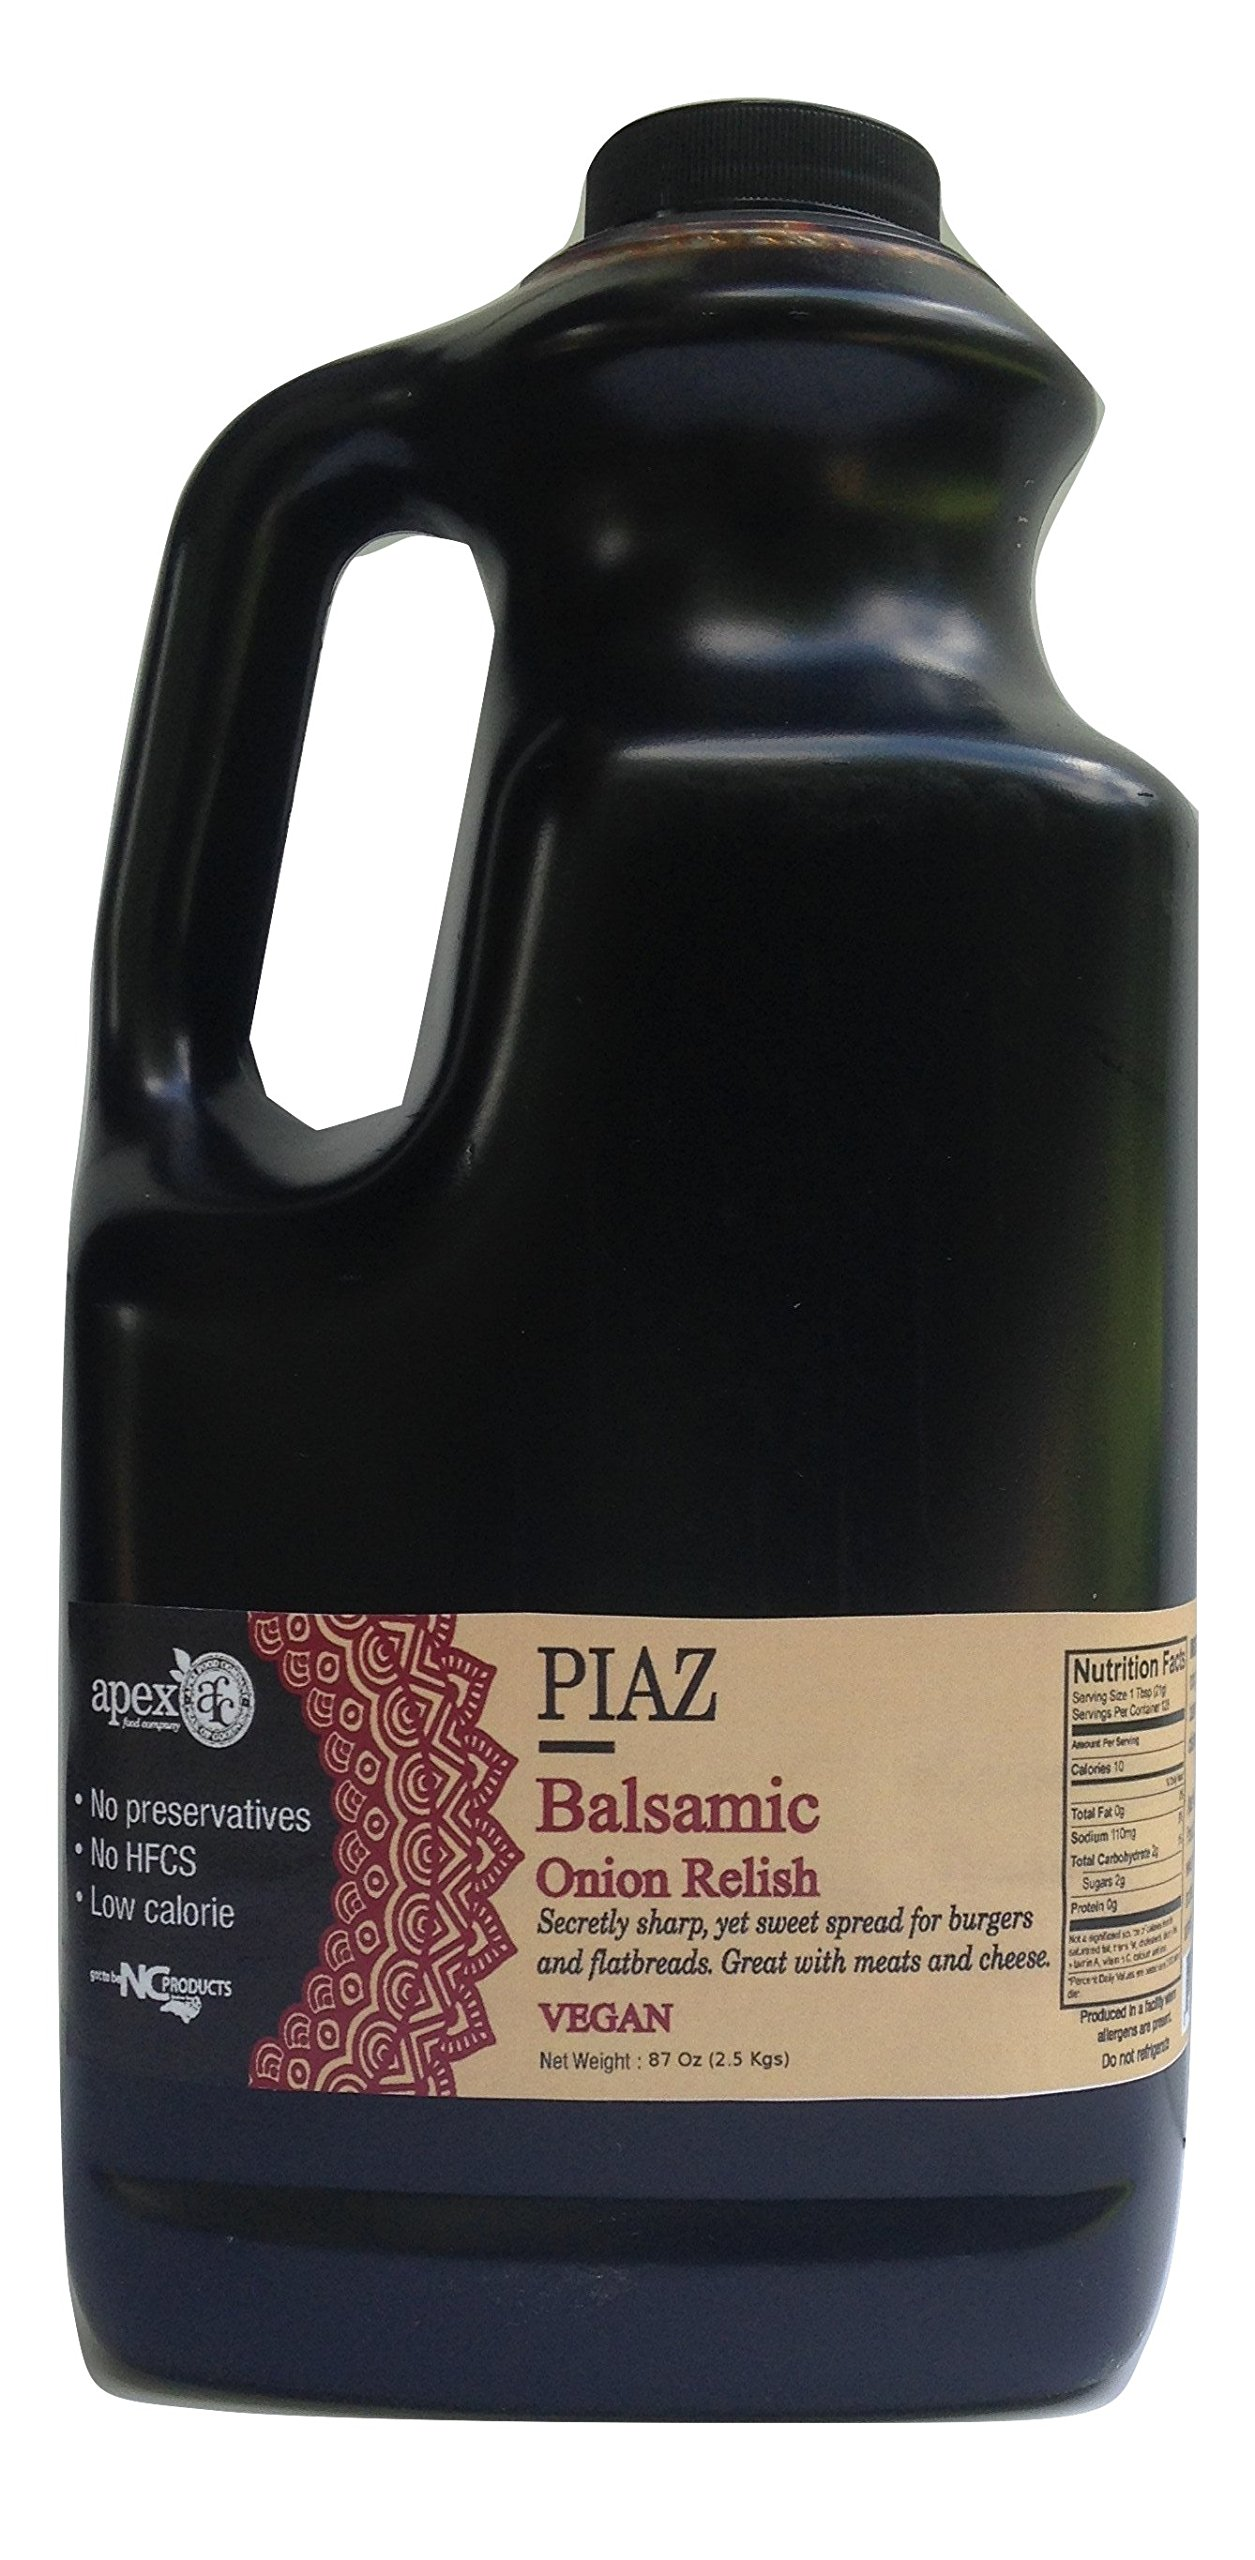 Piaz Balsamic Onion Relish 1/2 Gallon